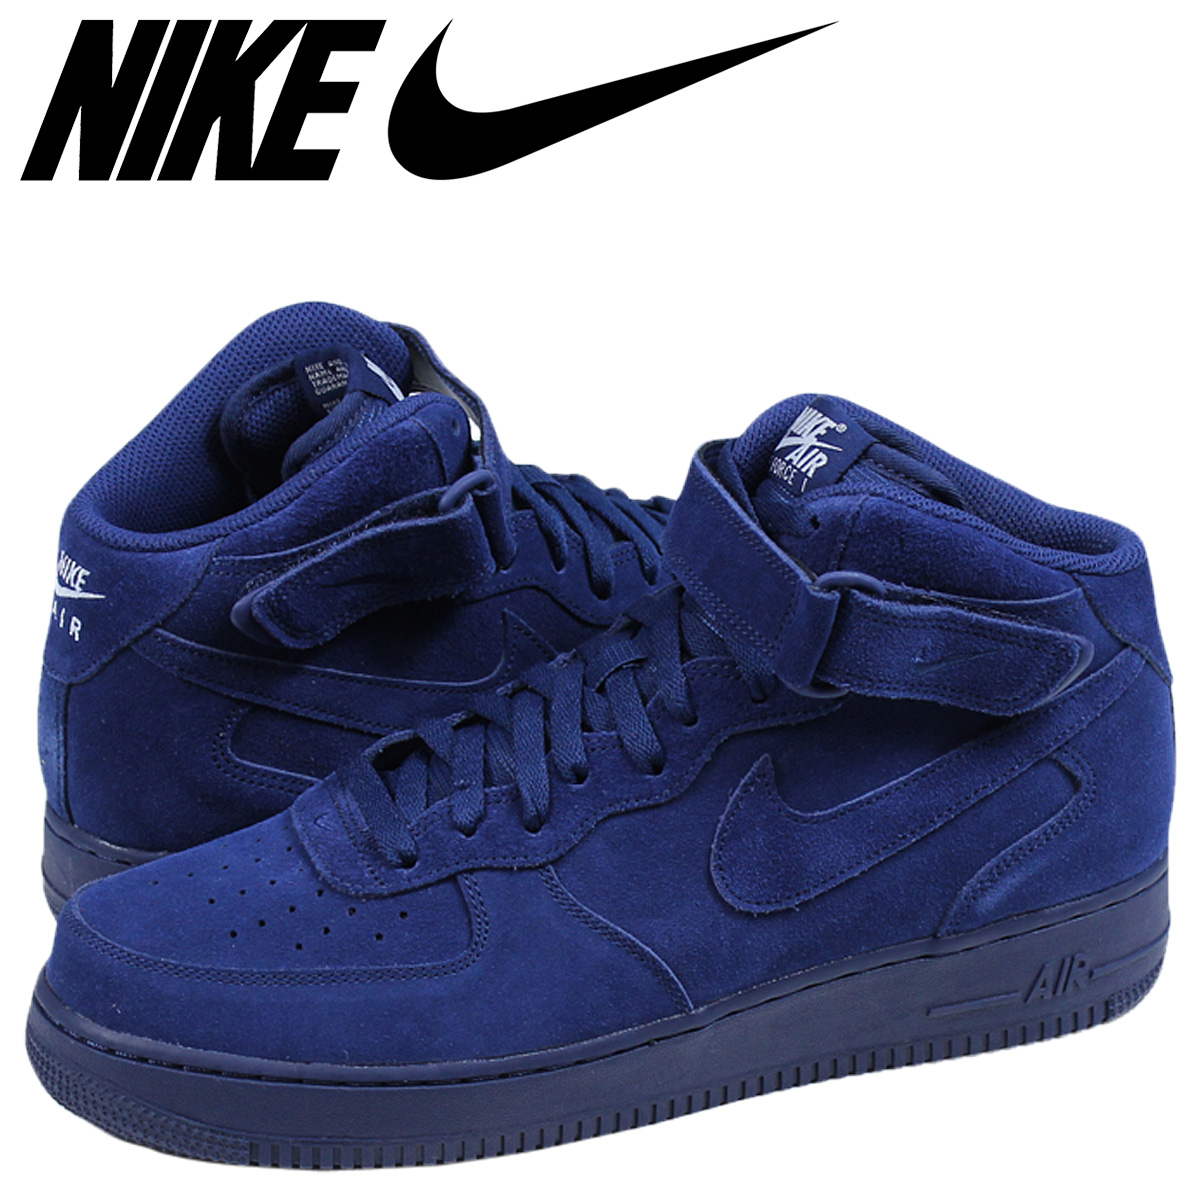 all blue air force 1 mid